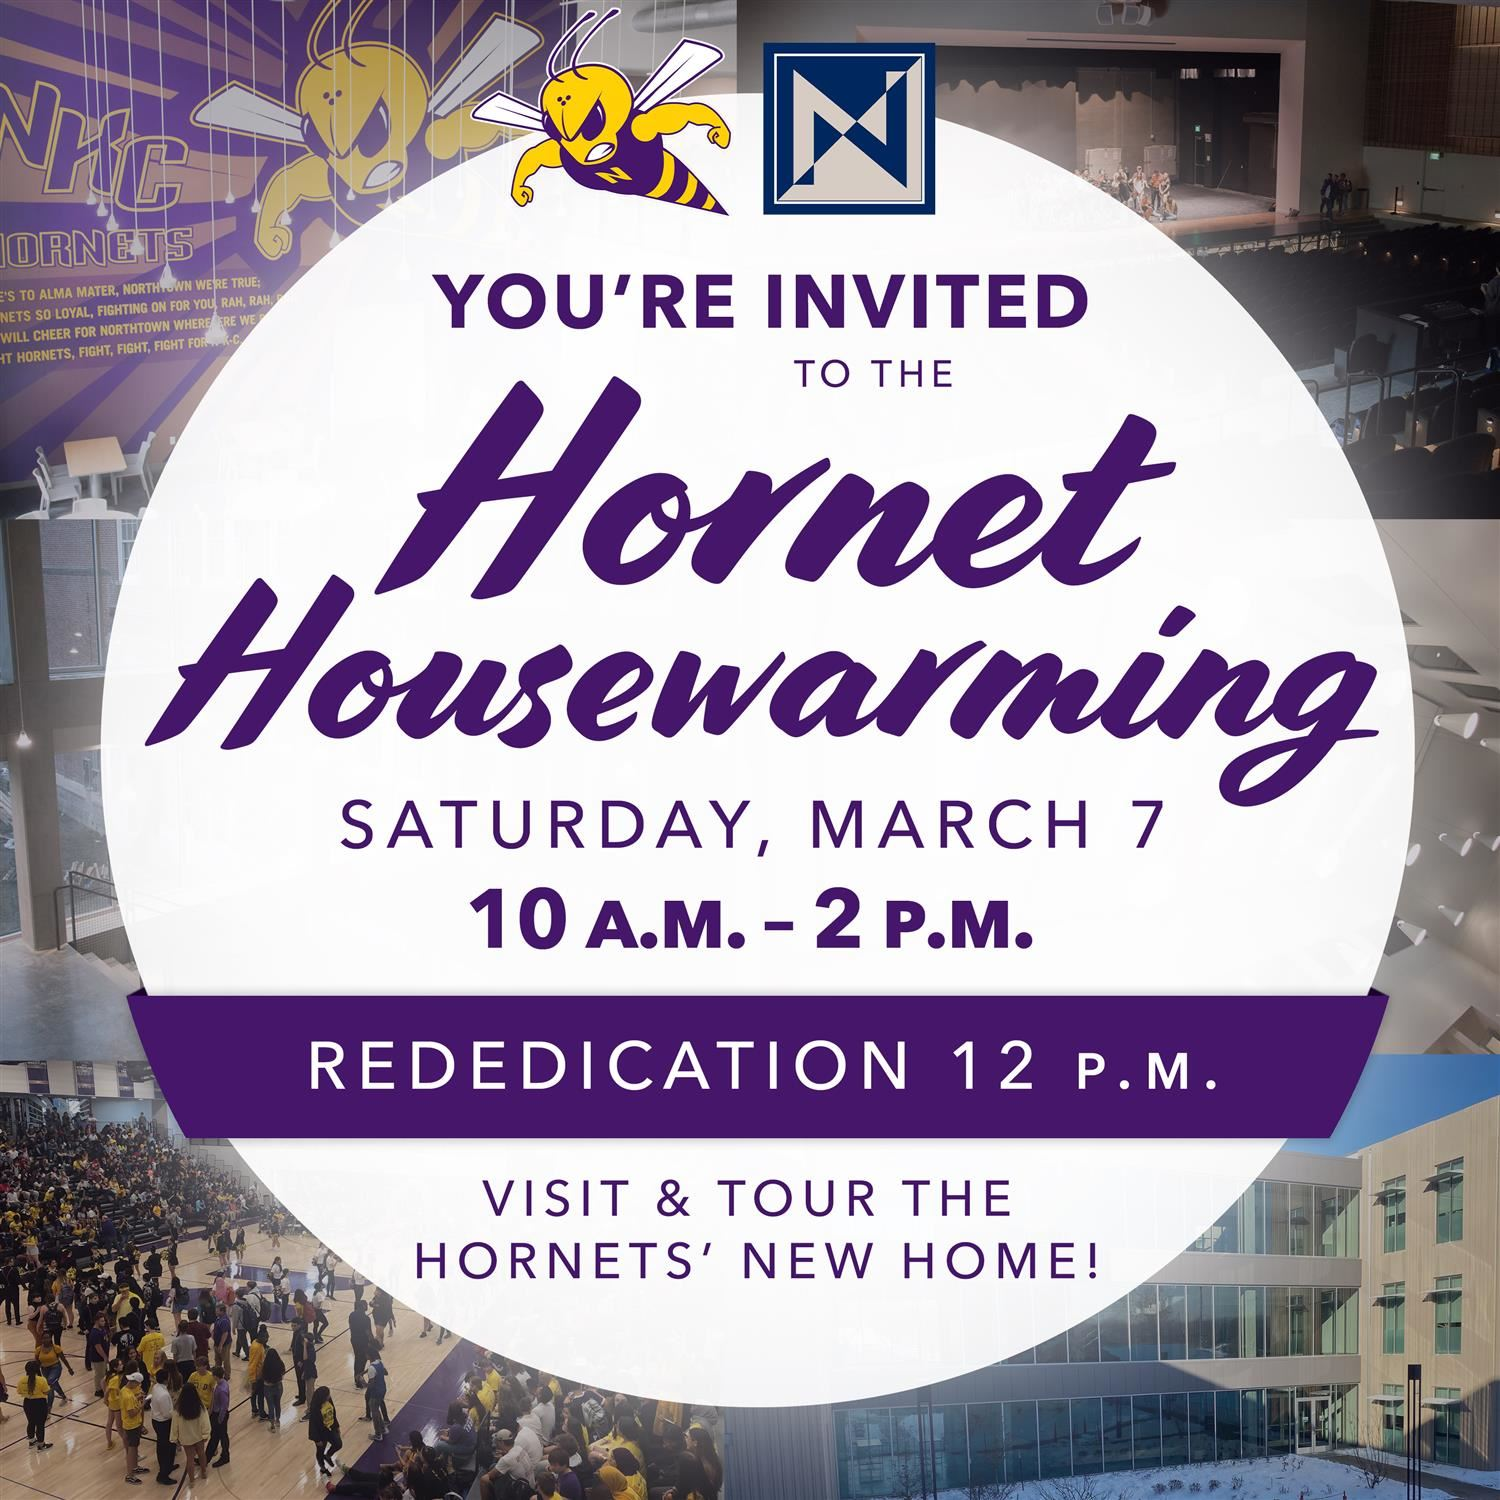 Hornet Housewarming Invitation